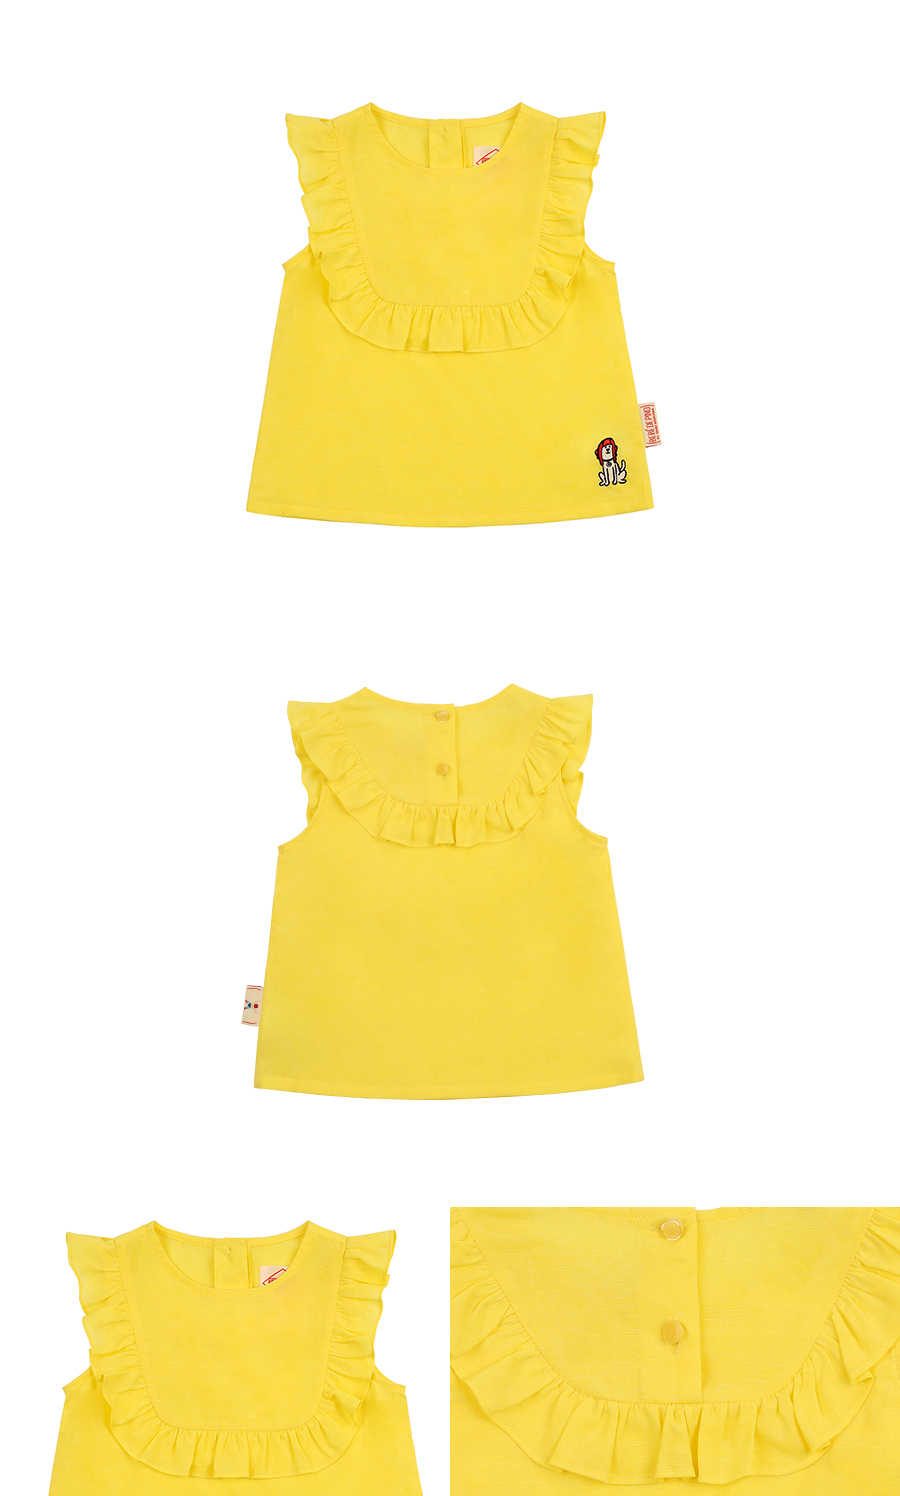 Puppy baby yellow ruffle blouse 상세 이미지